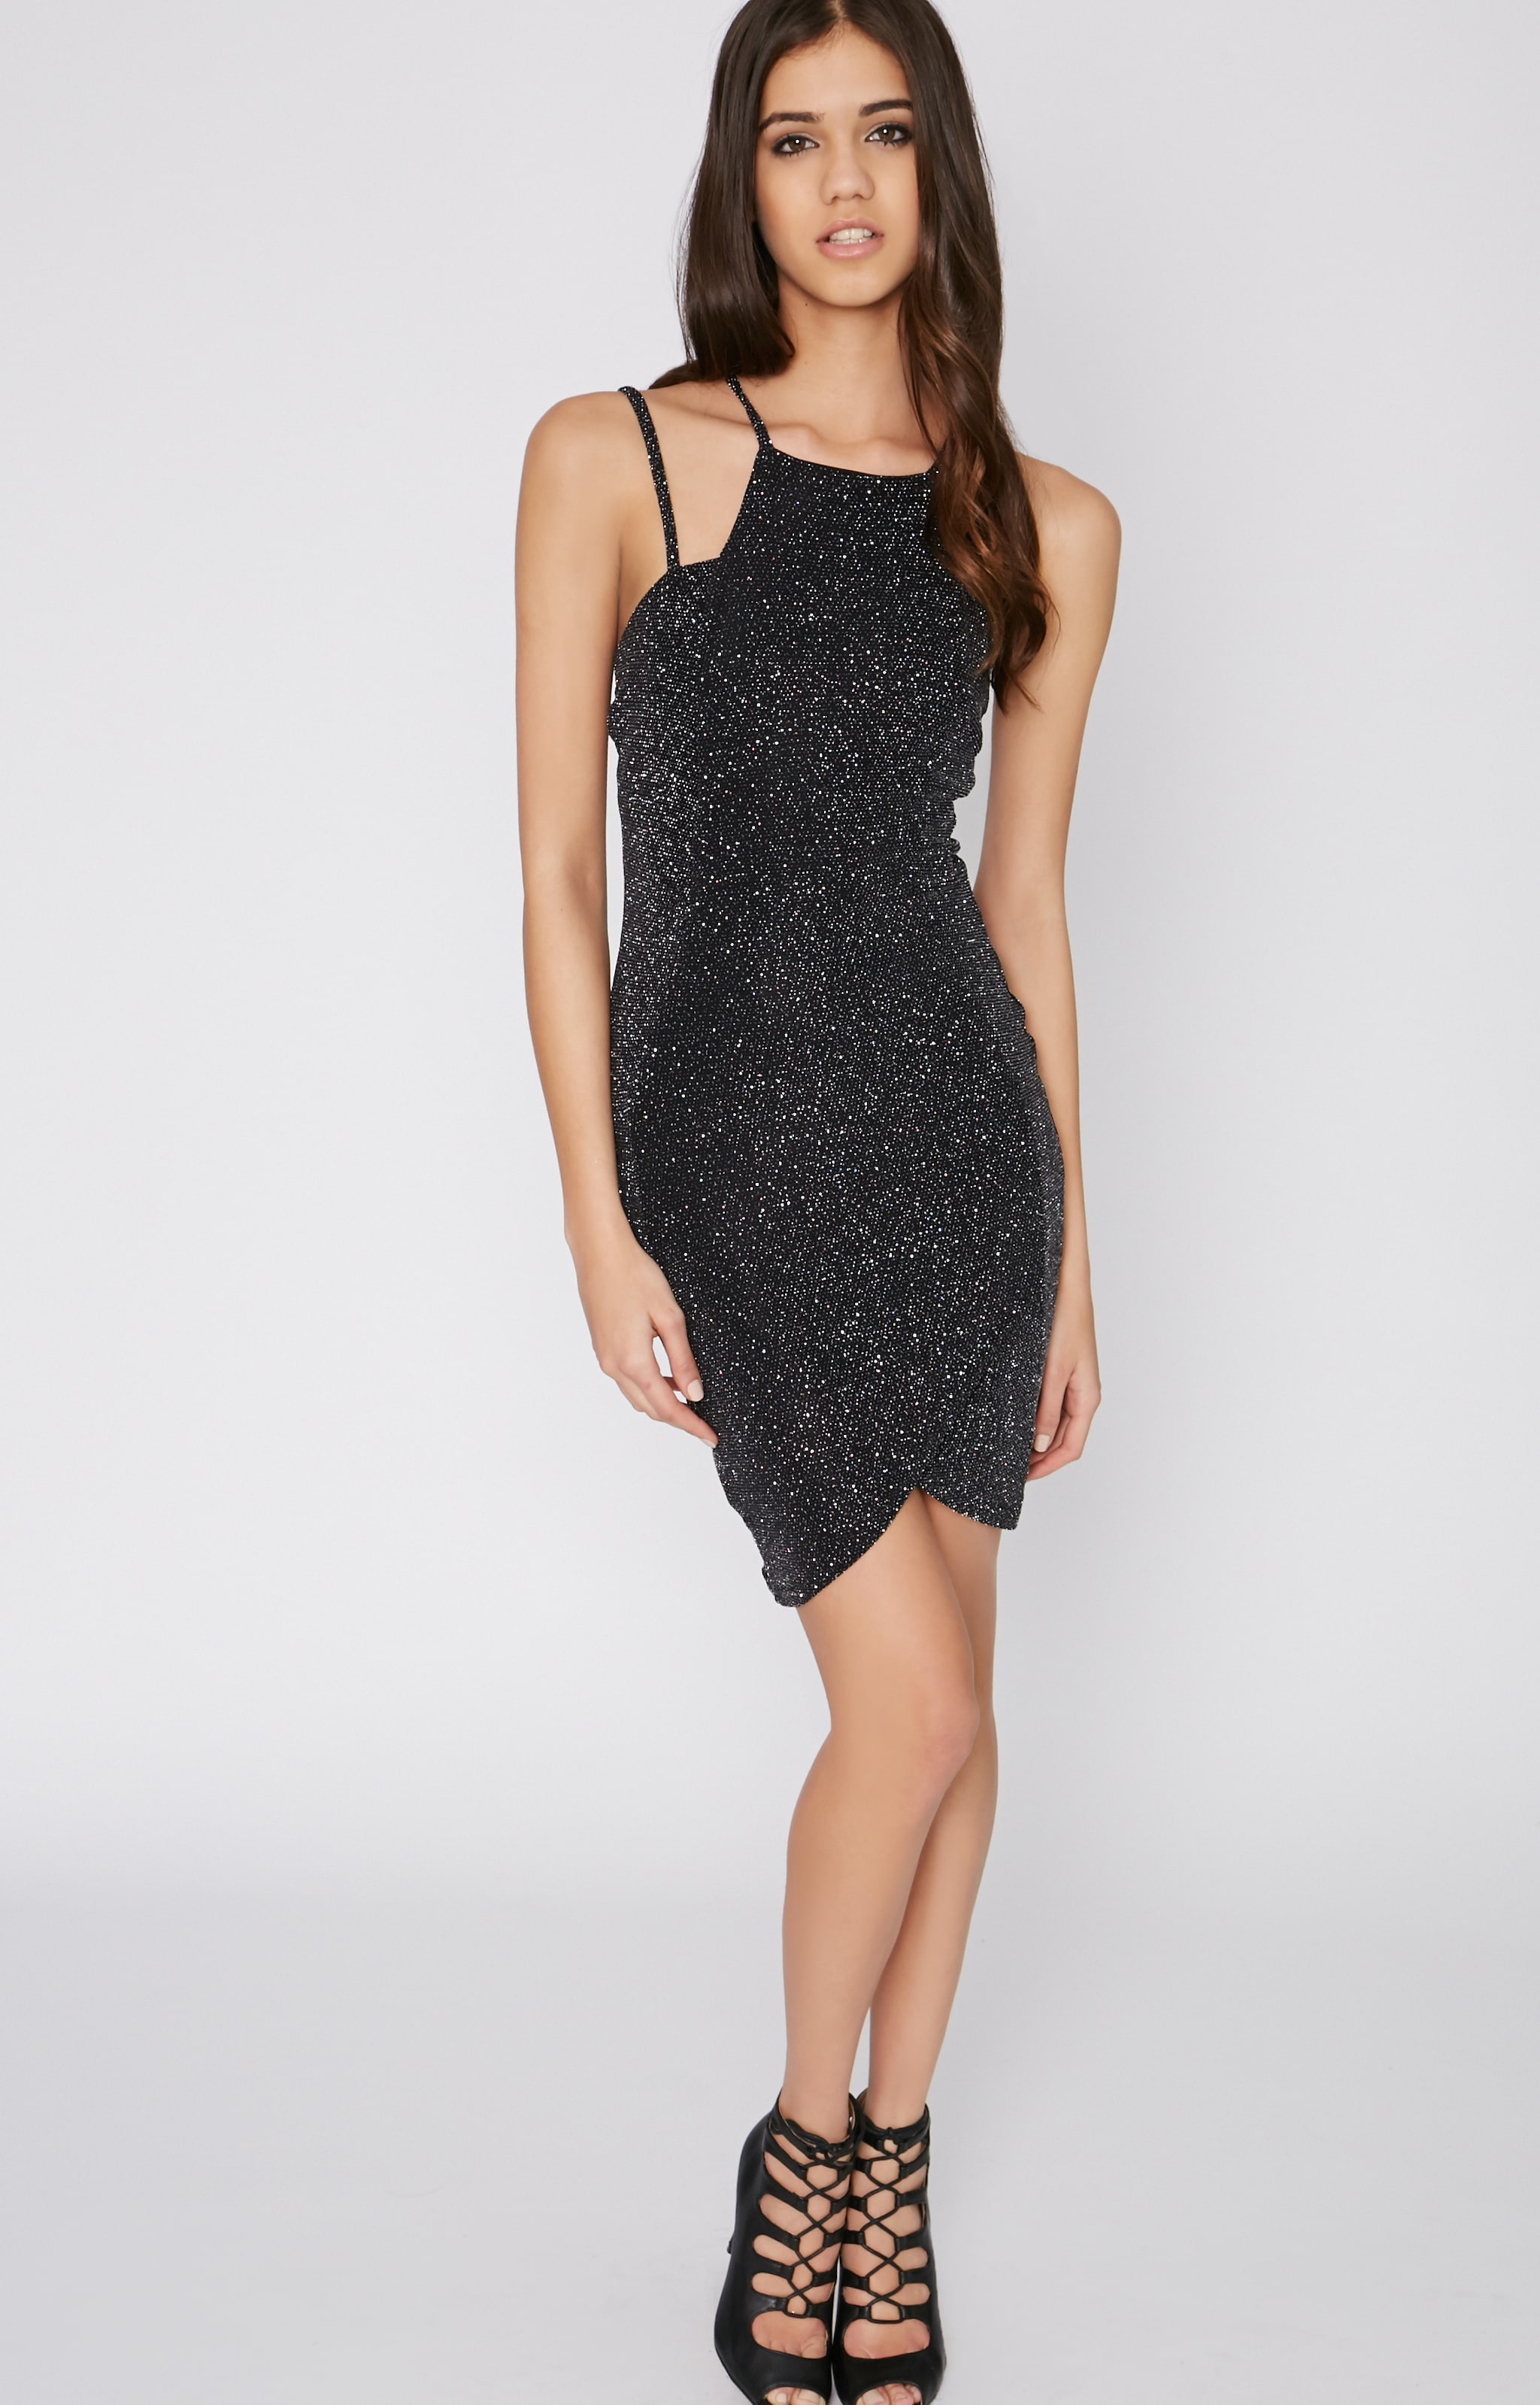 Moriah Black Glitter Dress 3